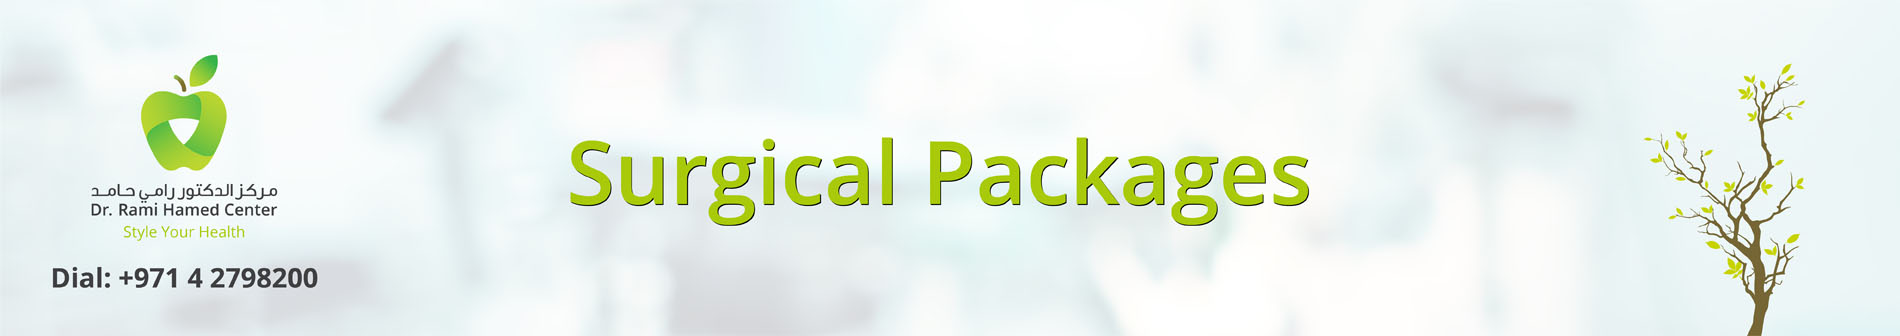 Surgical Packages